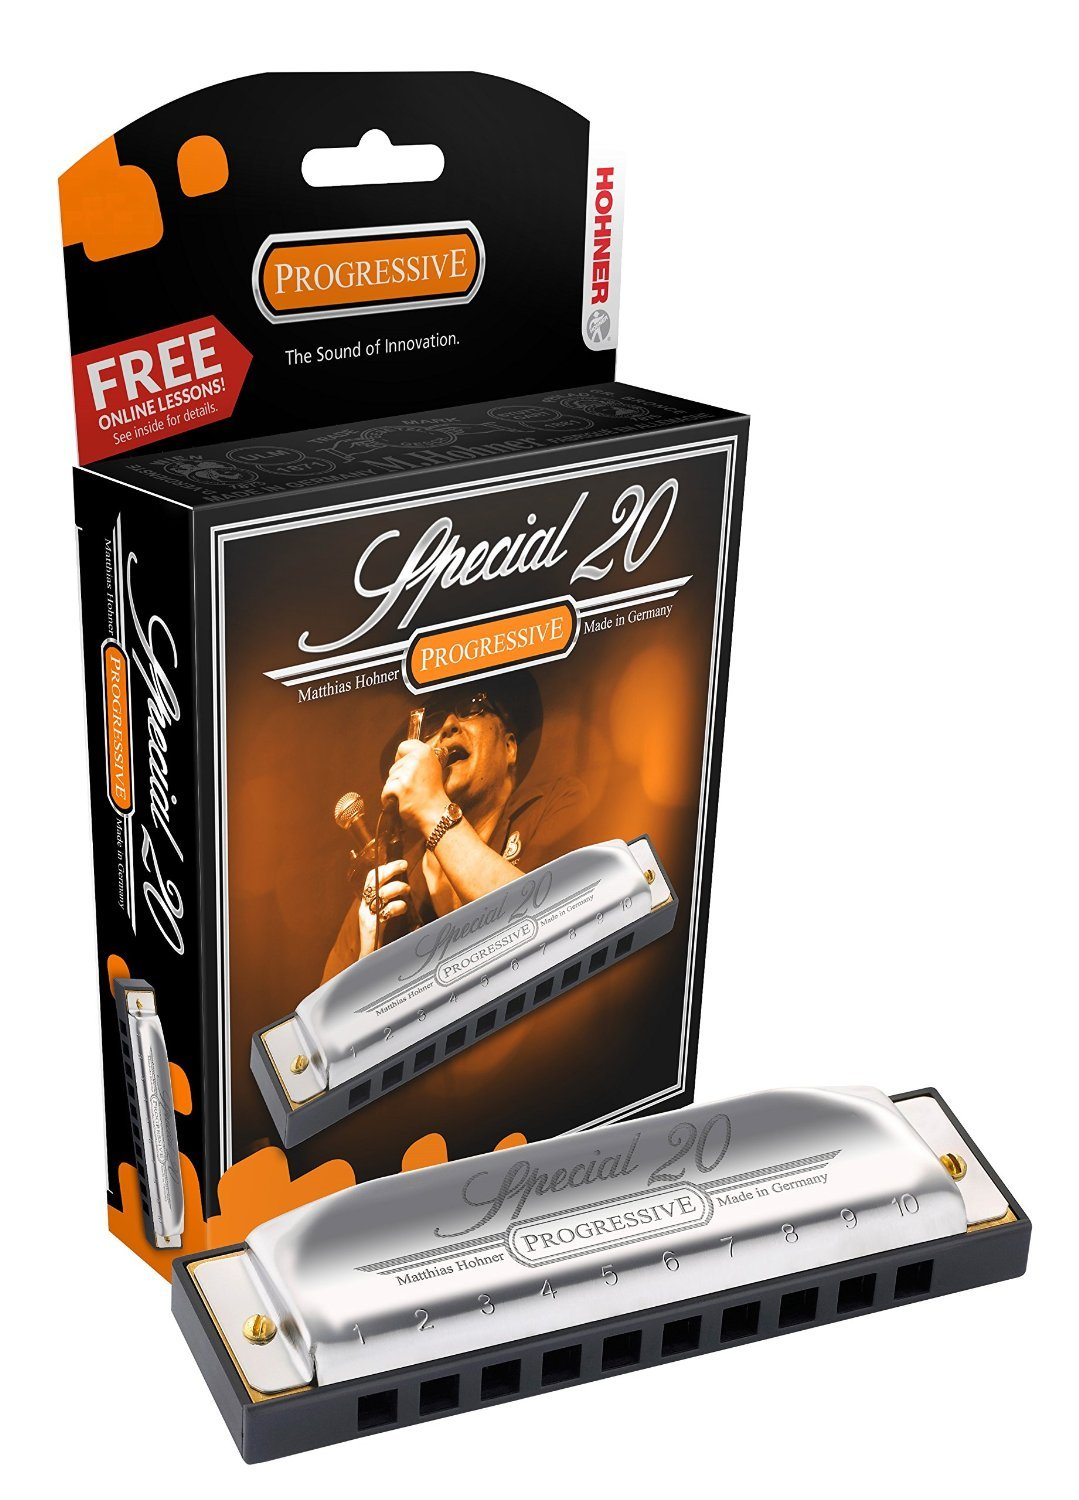 New Hohner Special 20 Harmonica